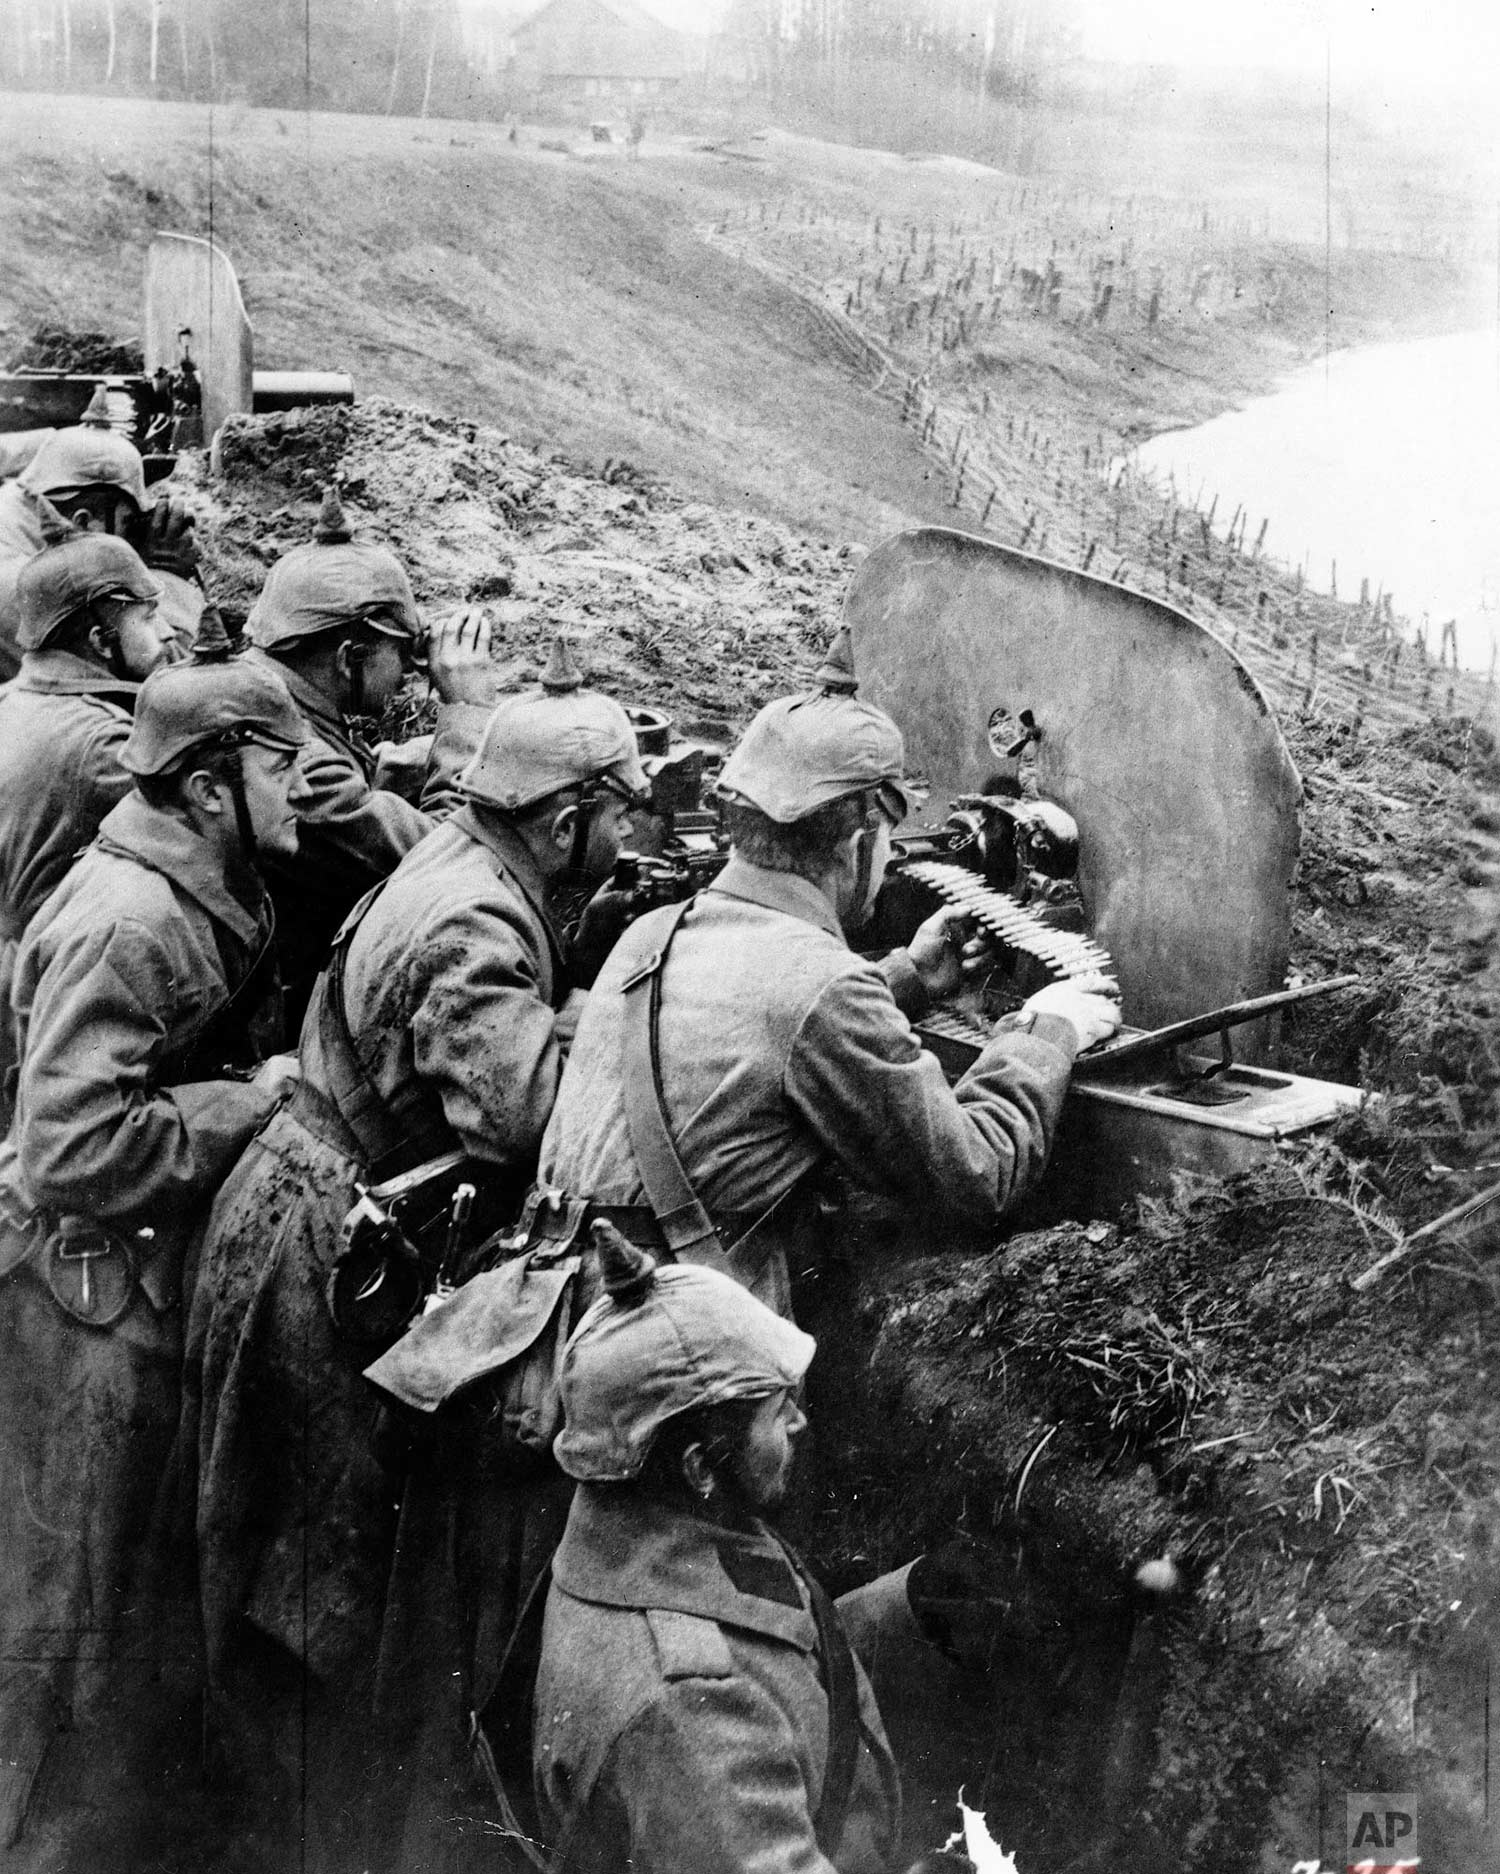 In this 1916 photo, German troops man a machine gun post from a trench at the Vistula River in Russia during World War One. (AP-Photo)